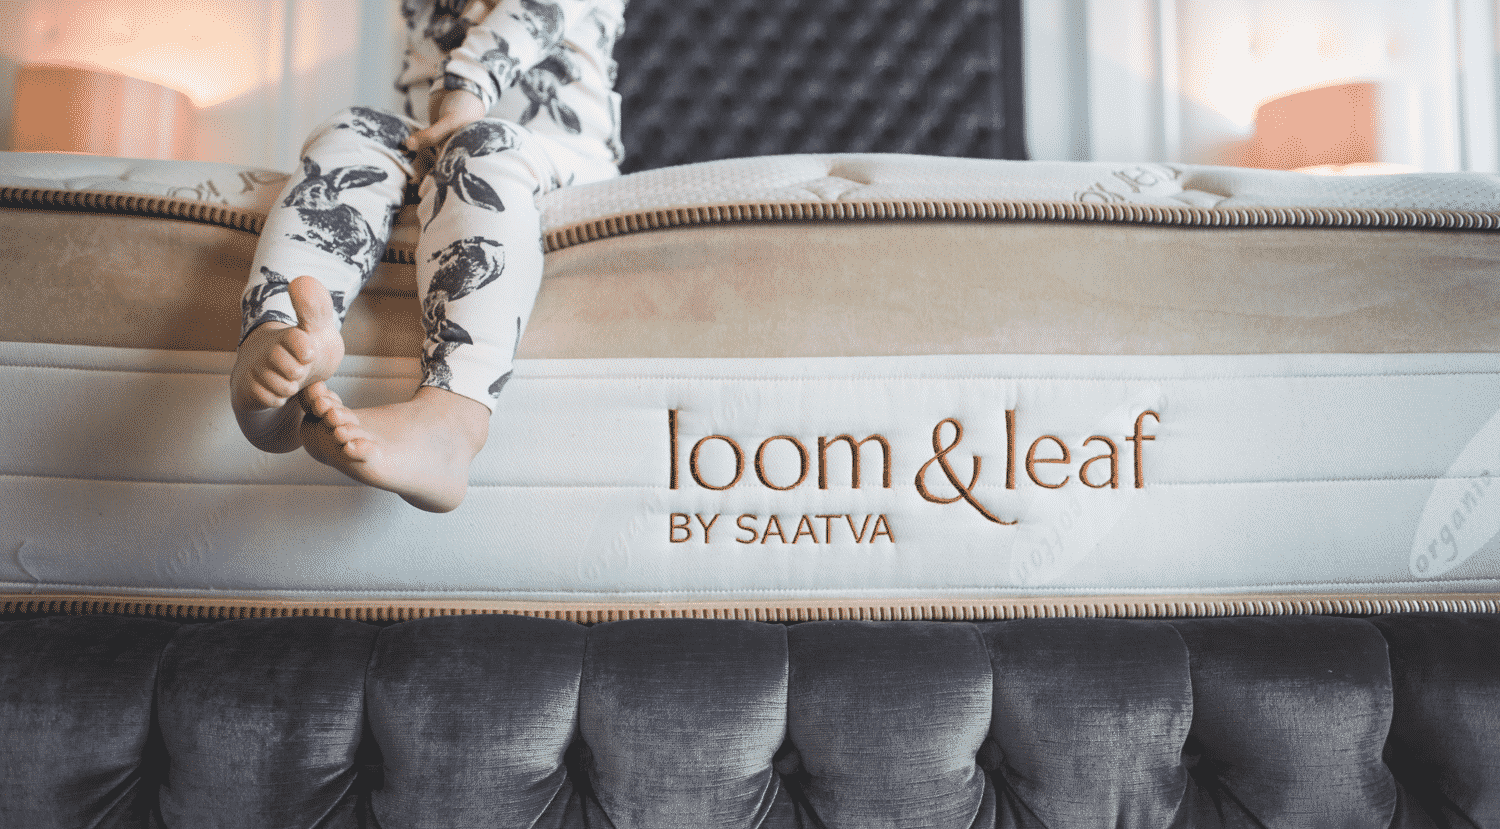 The Loom and Leaf by Saatva